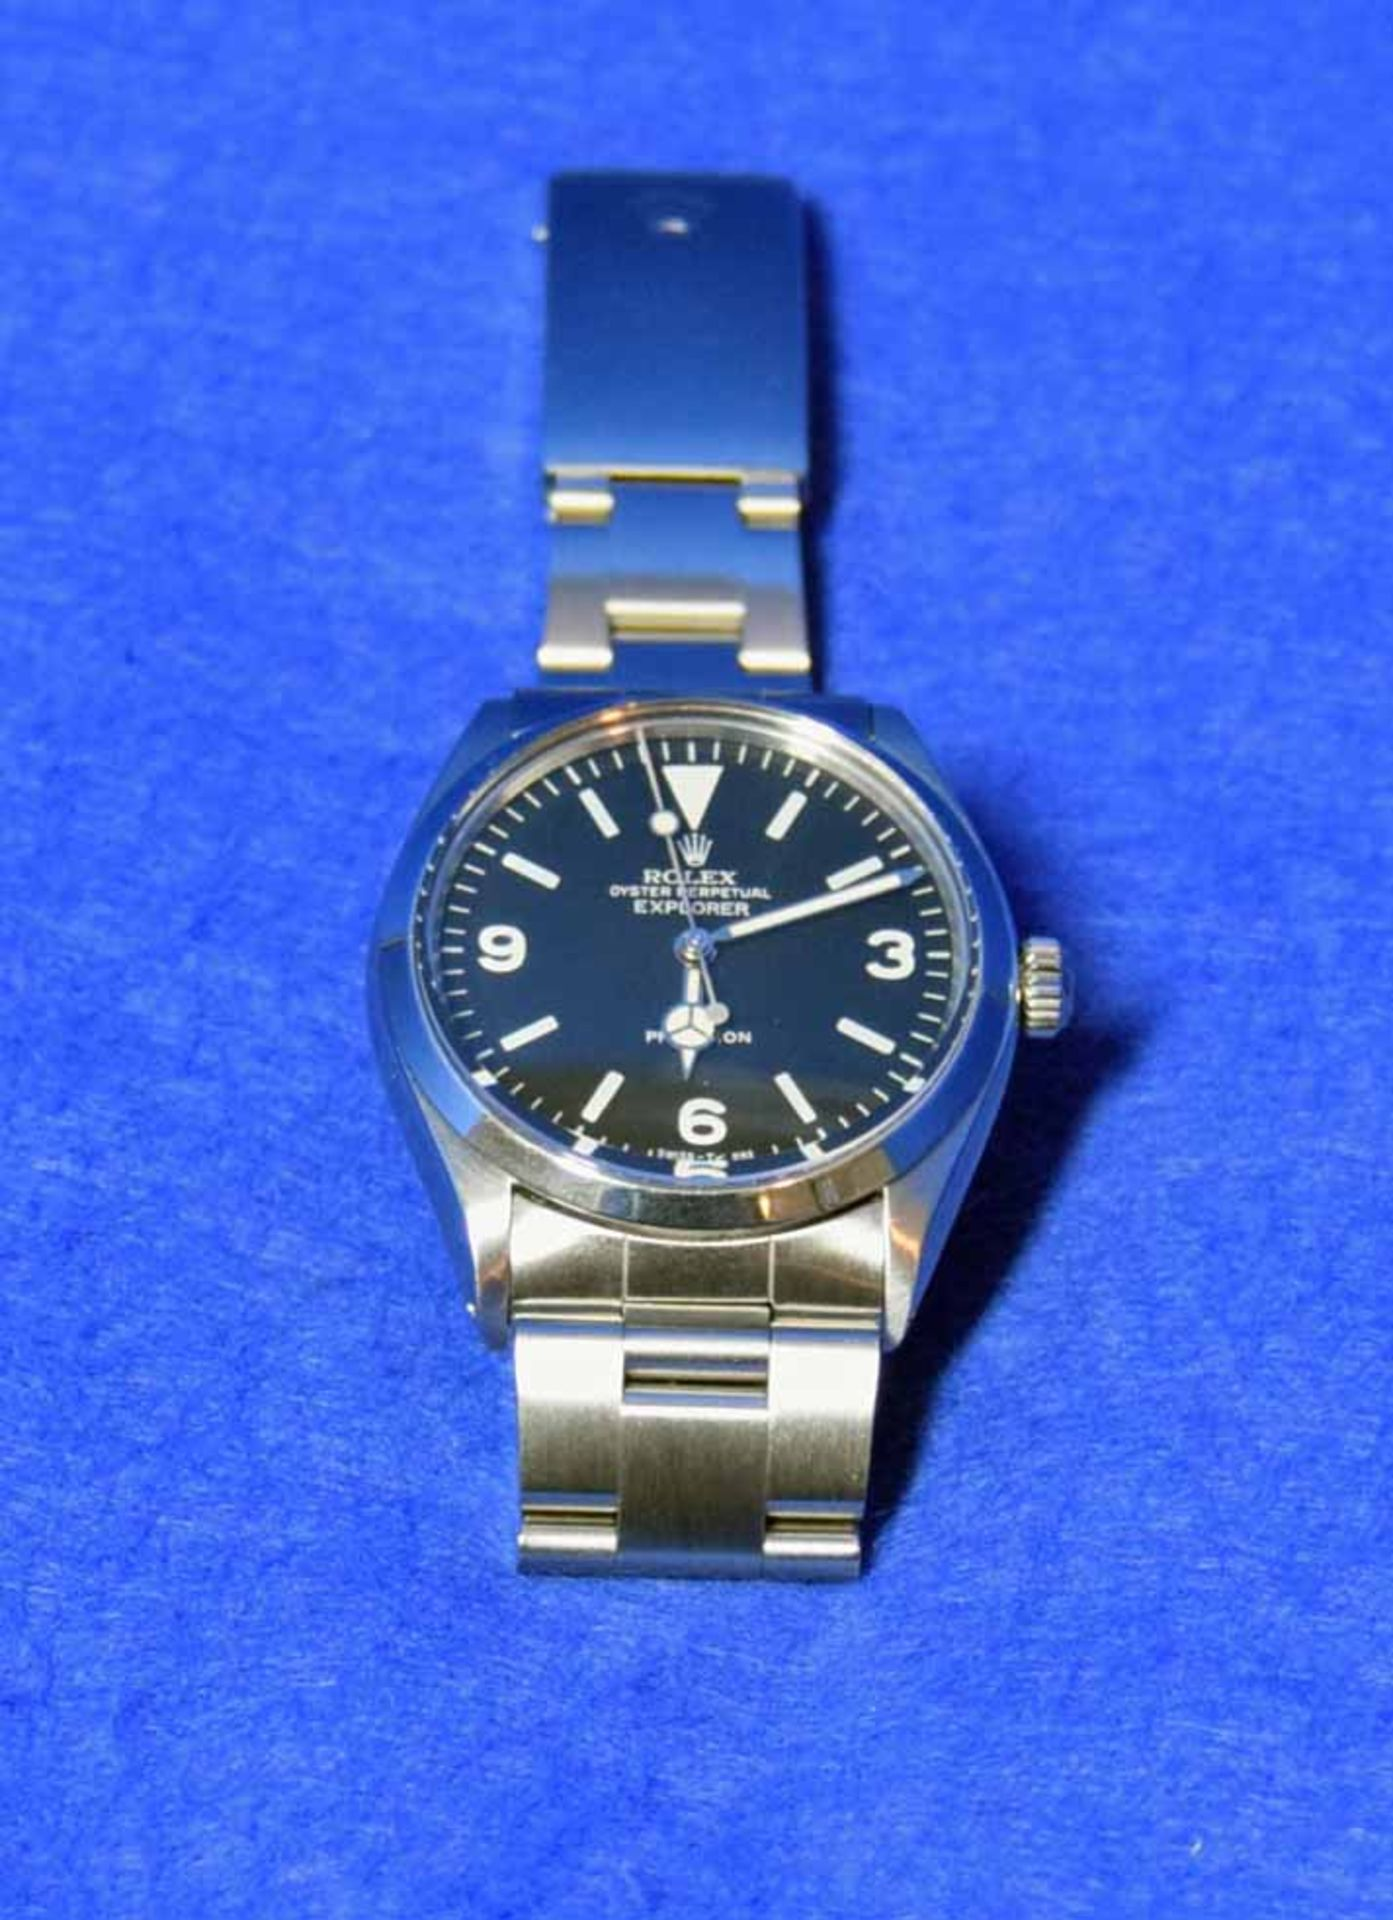 A ROLEX Explorer Watch in a 36mm dia. Oyster Steel Case, a Black Dial Large Hour Markers and - Image 3 of 6